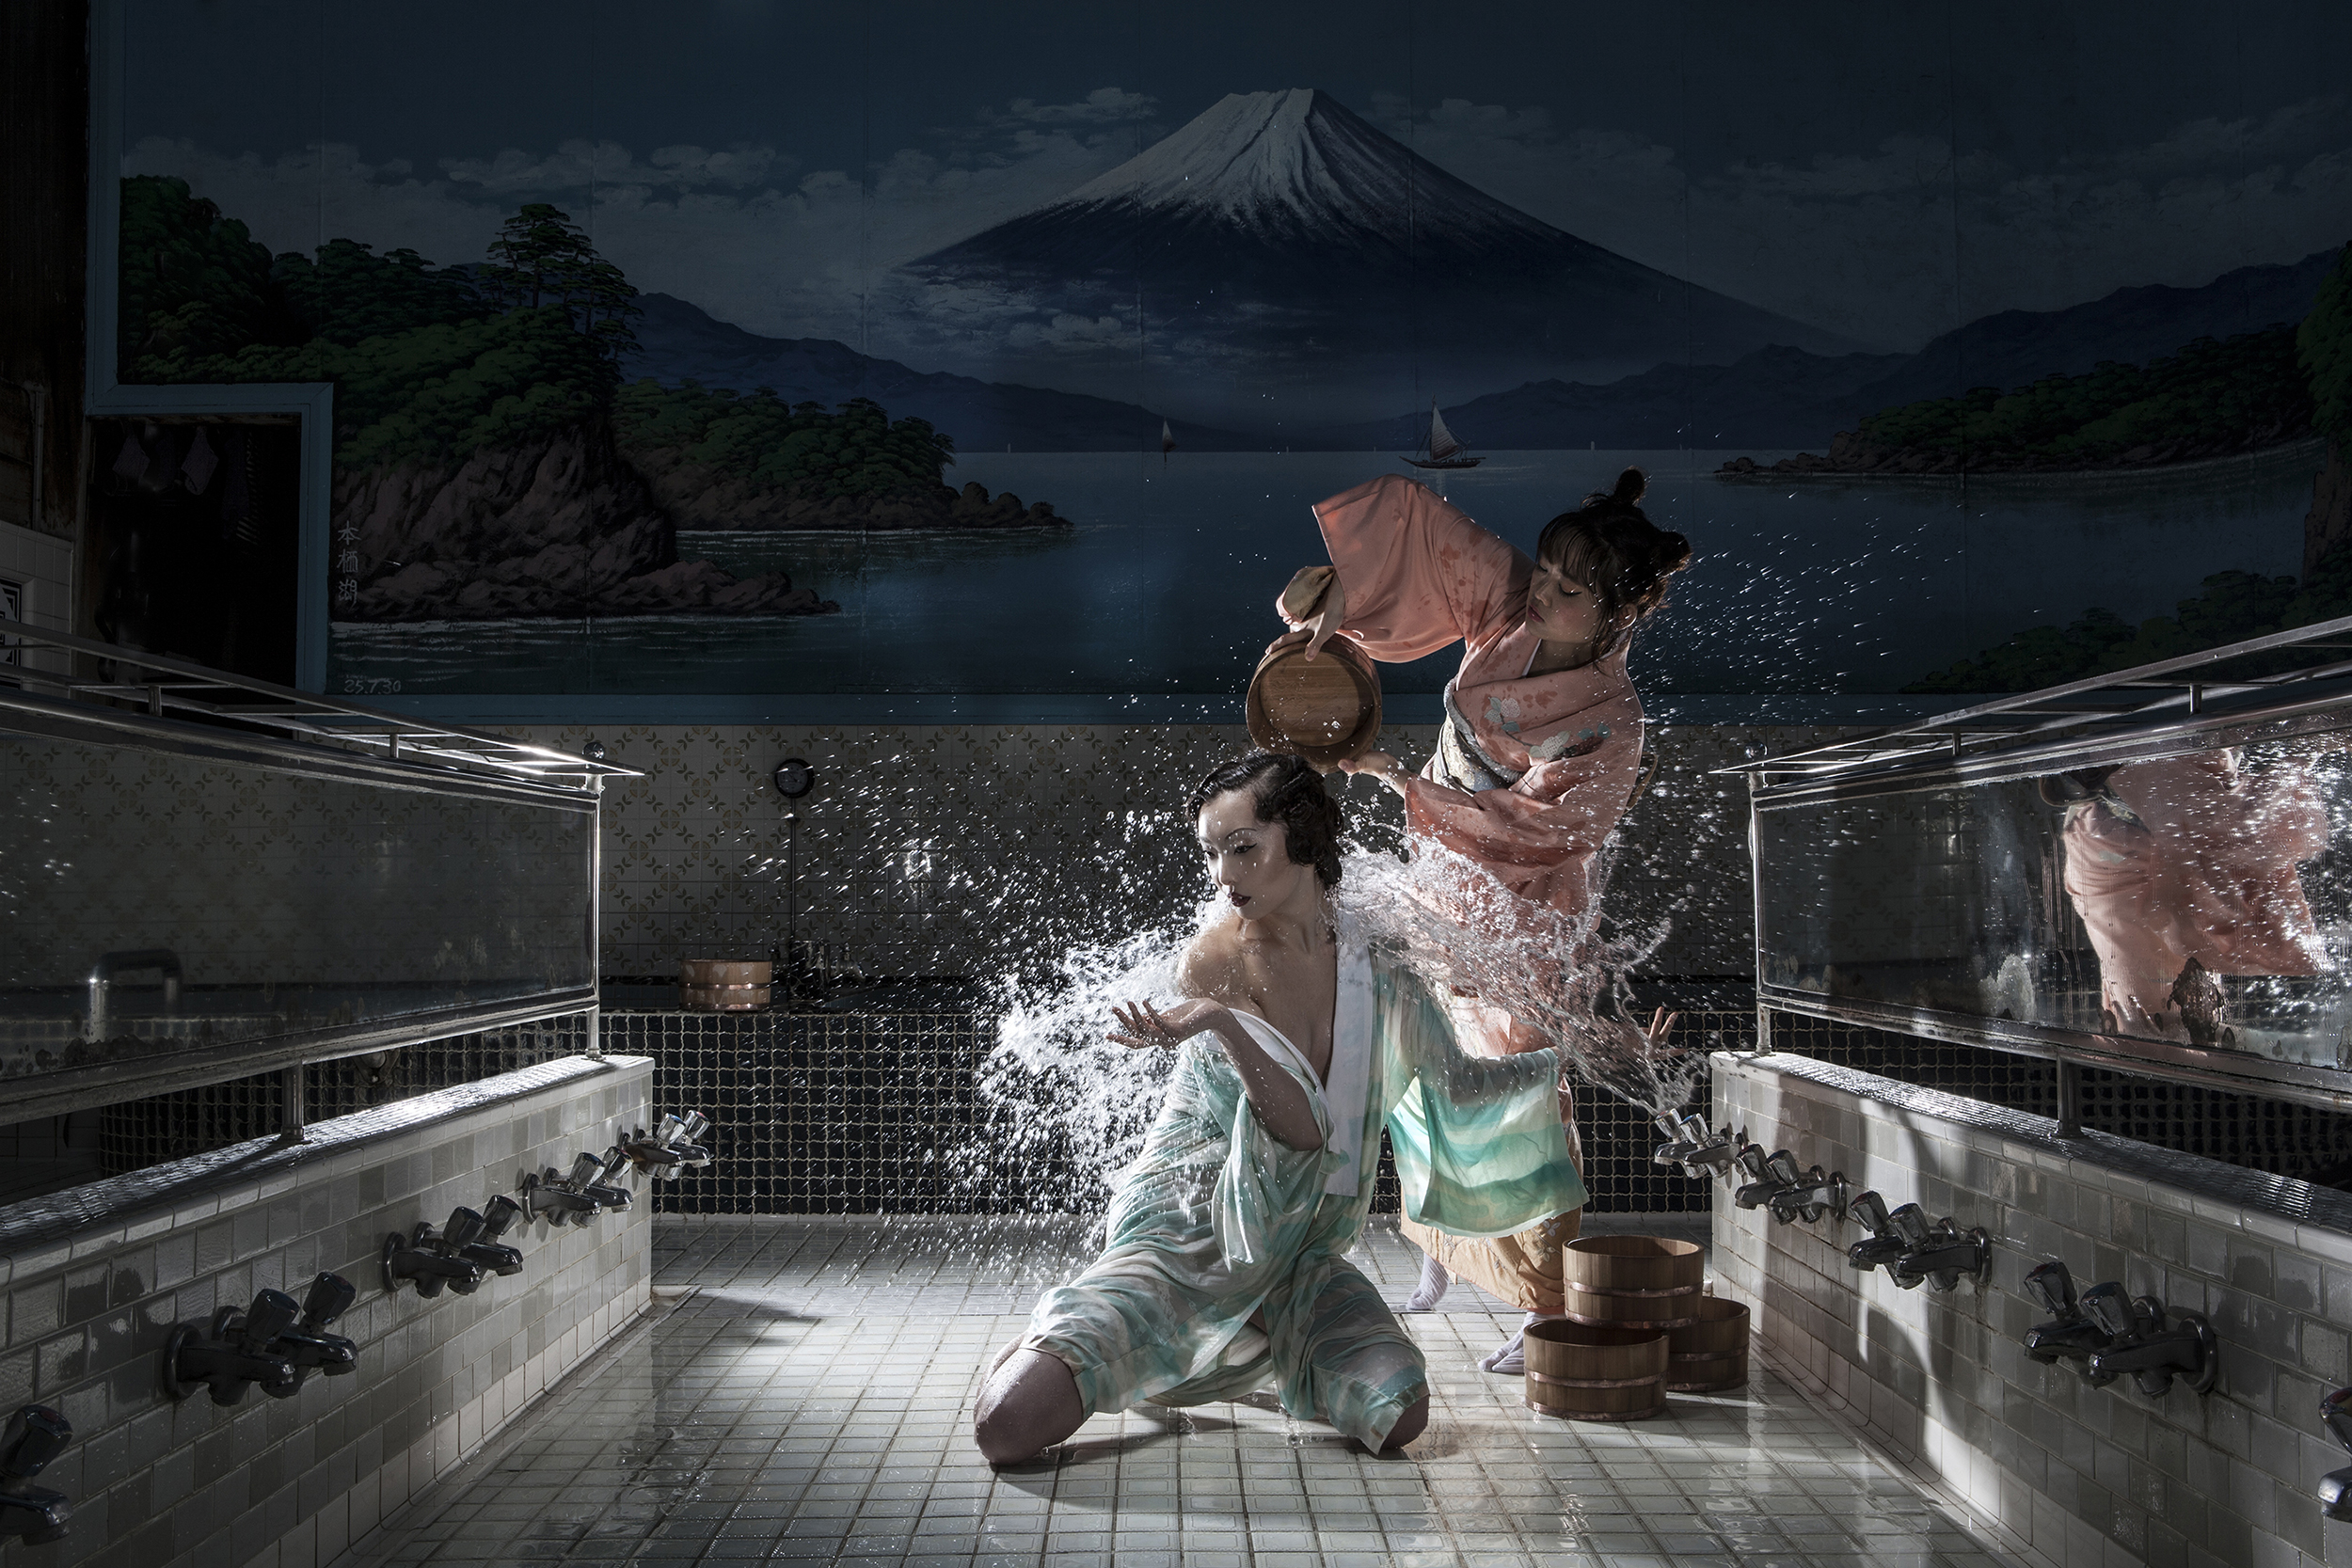 Maaya XIV, Nishi-Sugamp, Japan  , Archival pigment print, 2013, 40 x 60 inches